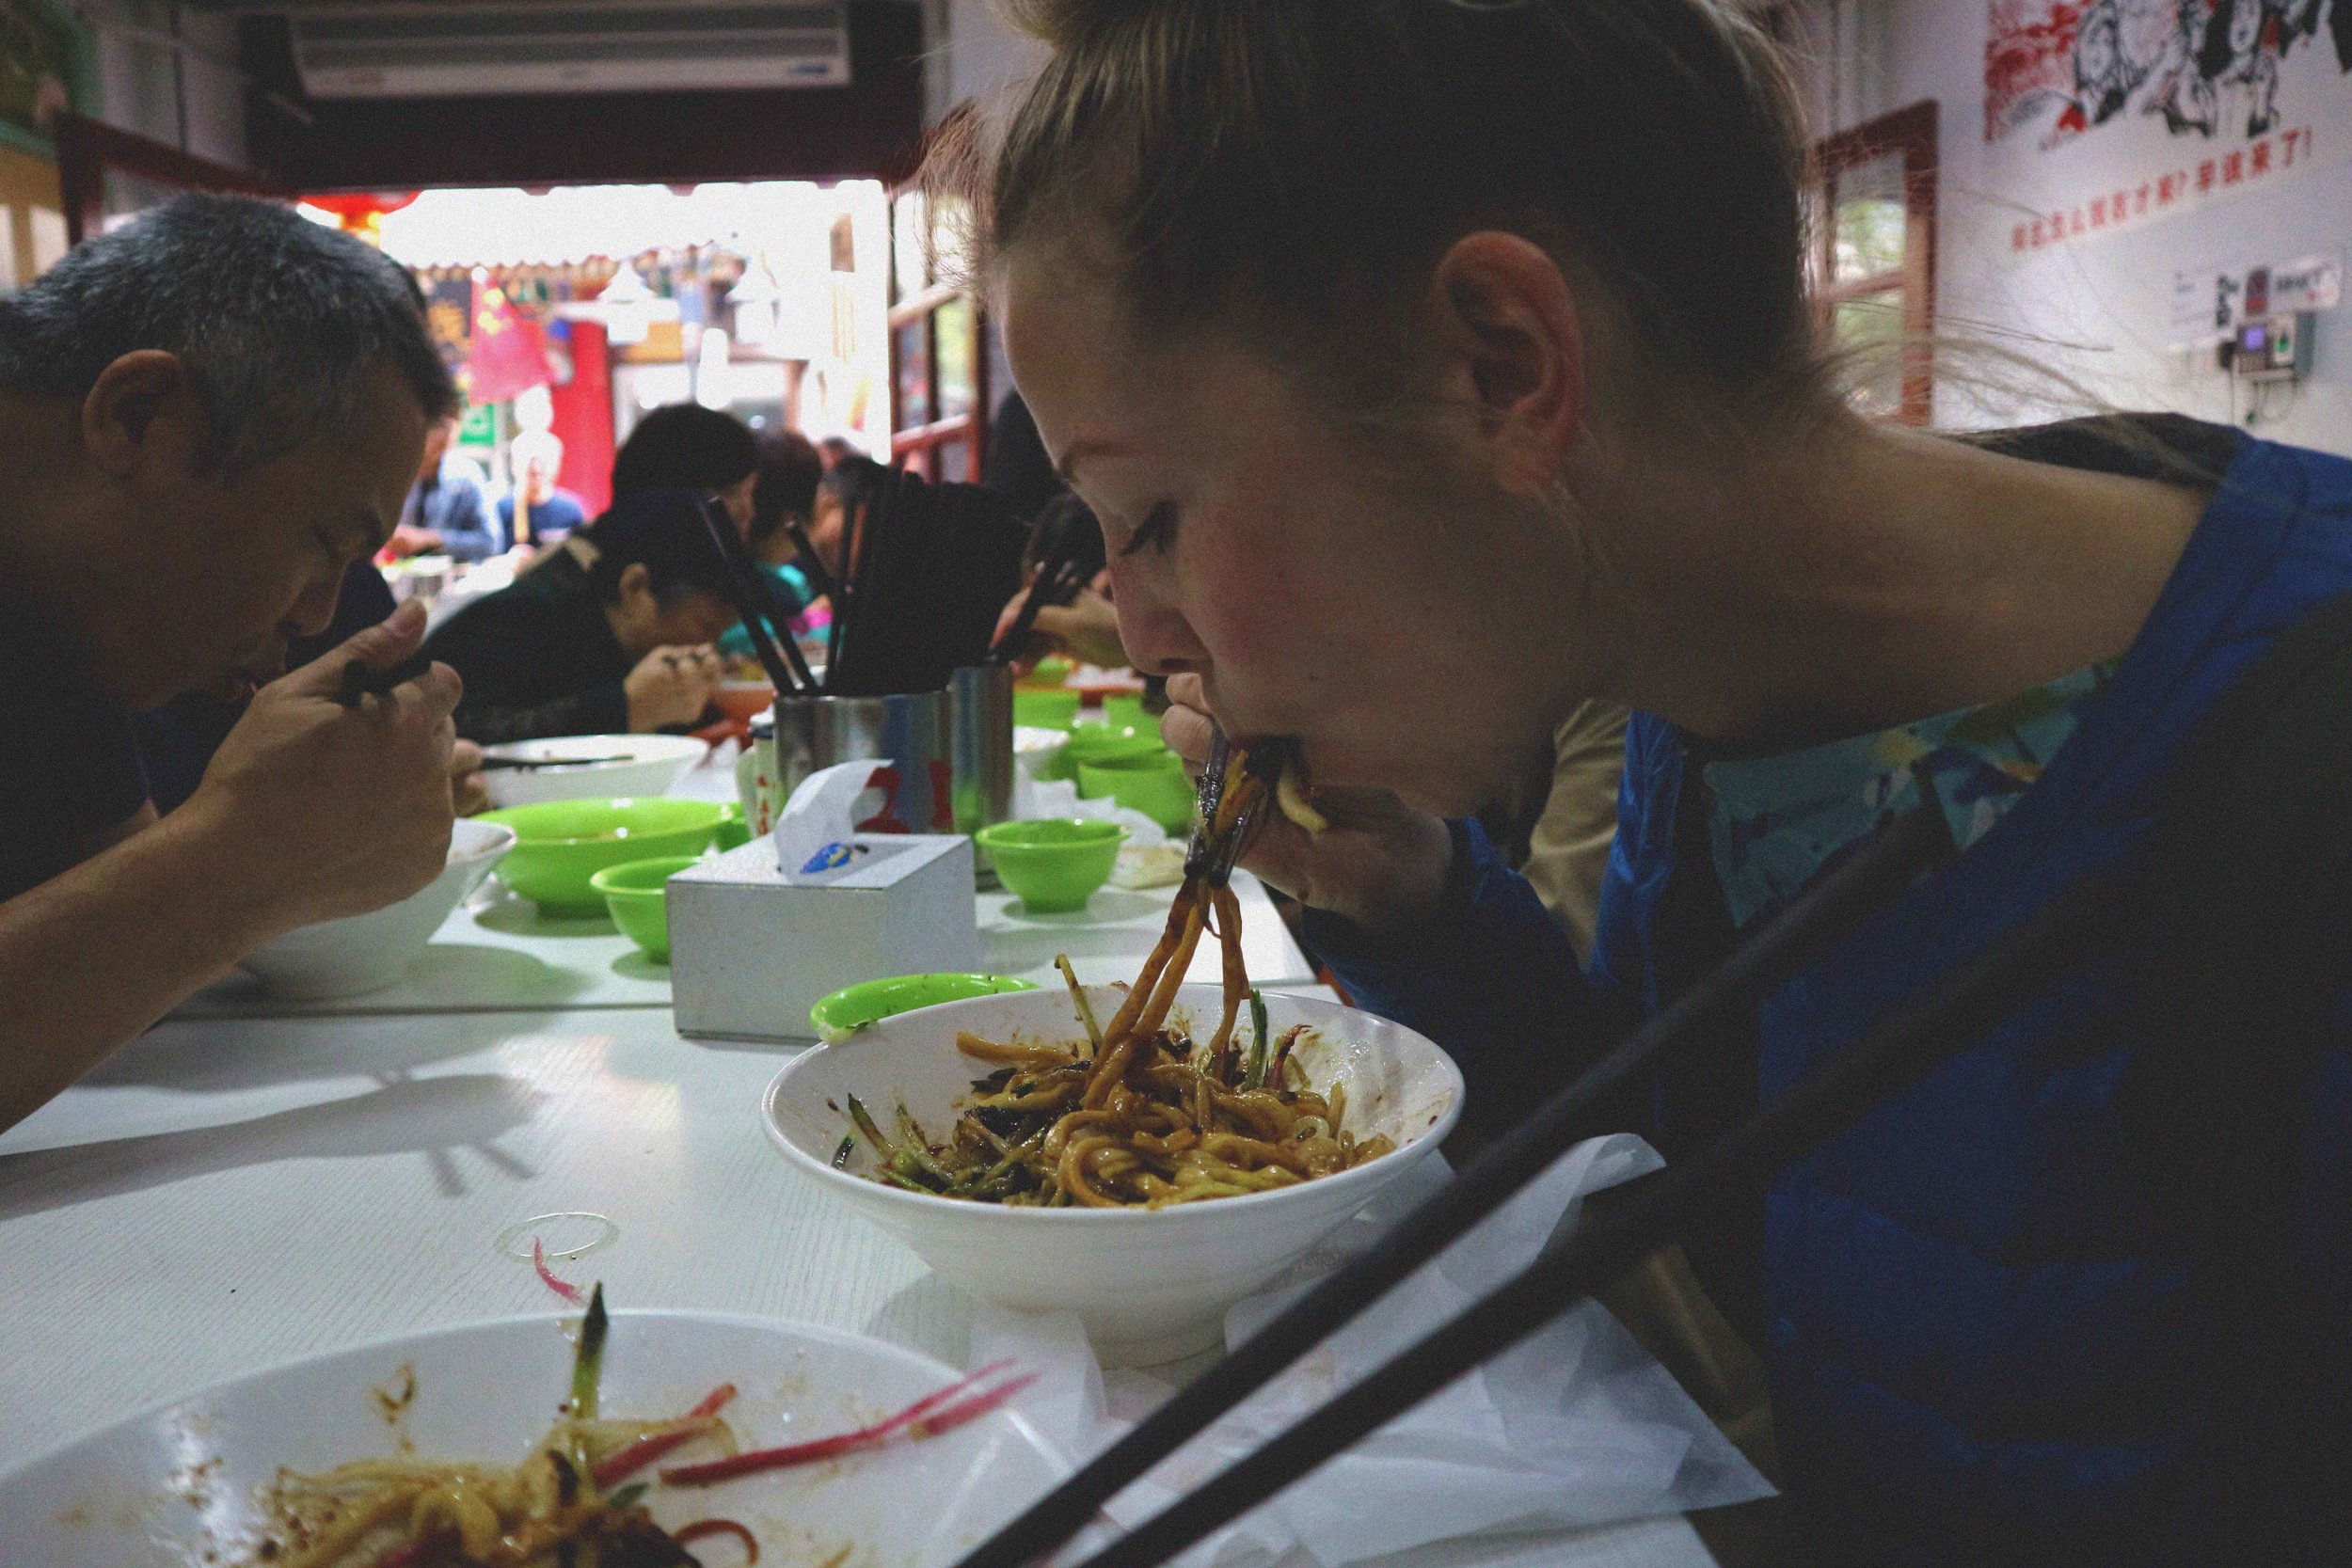 Ali munching on noodles in a traditional noodle kitchen